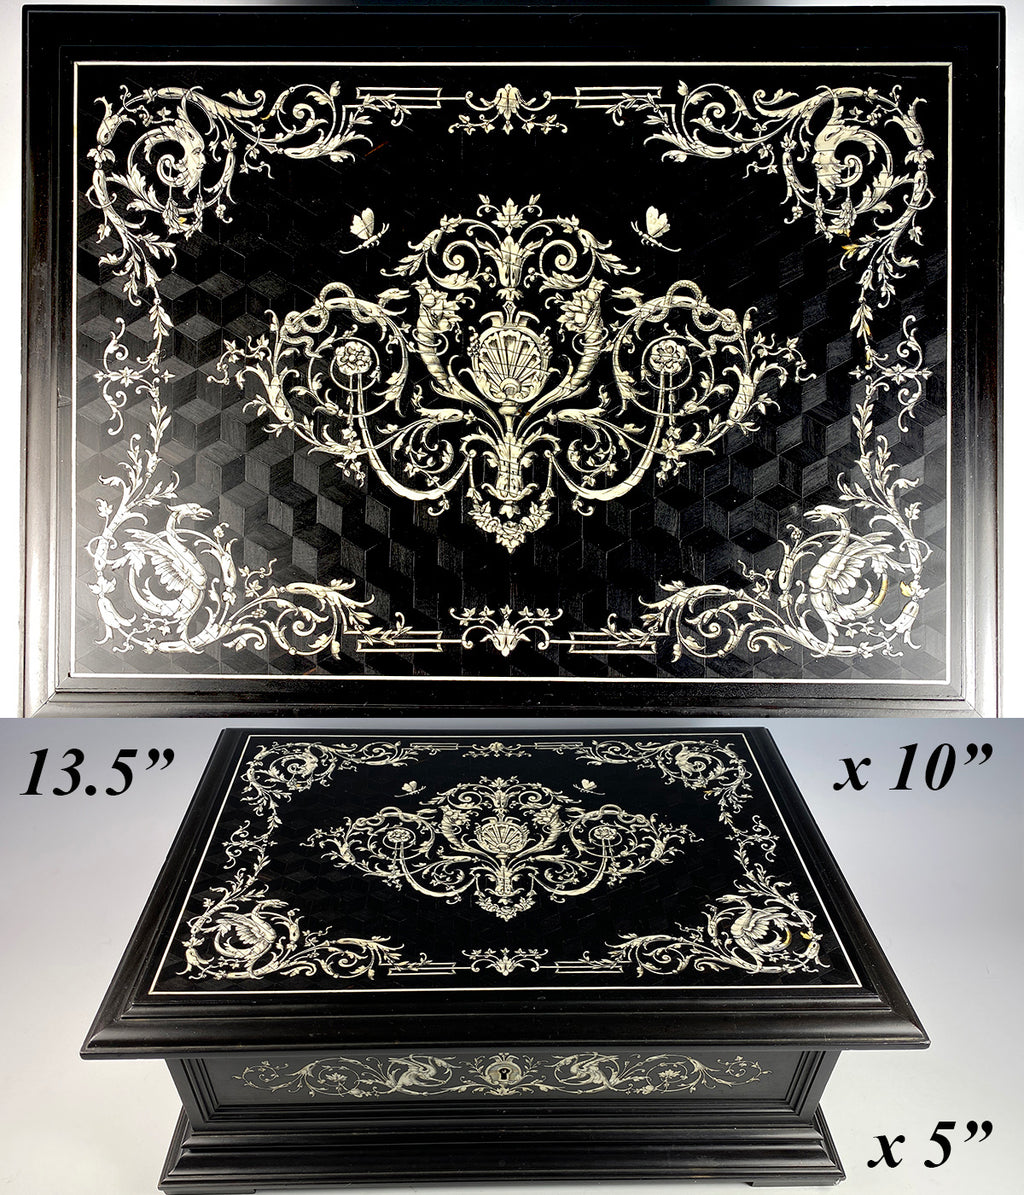 "RARE Antique 13.5"" x 10"" French Jewelry or Sewing Box, Ebony, Neo-Renaissance Ivory Marquetry, Griffen, Snakes, etc."